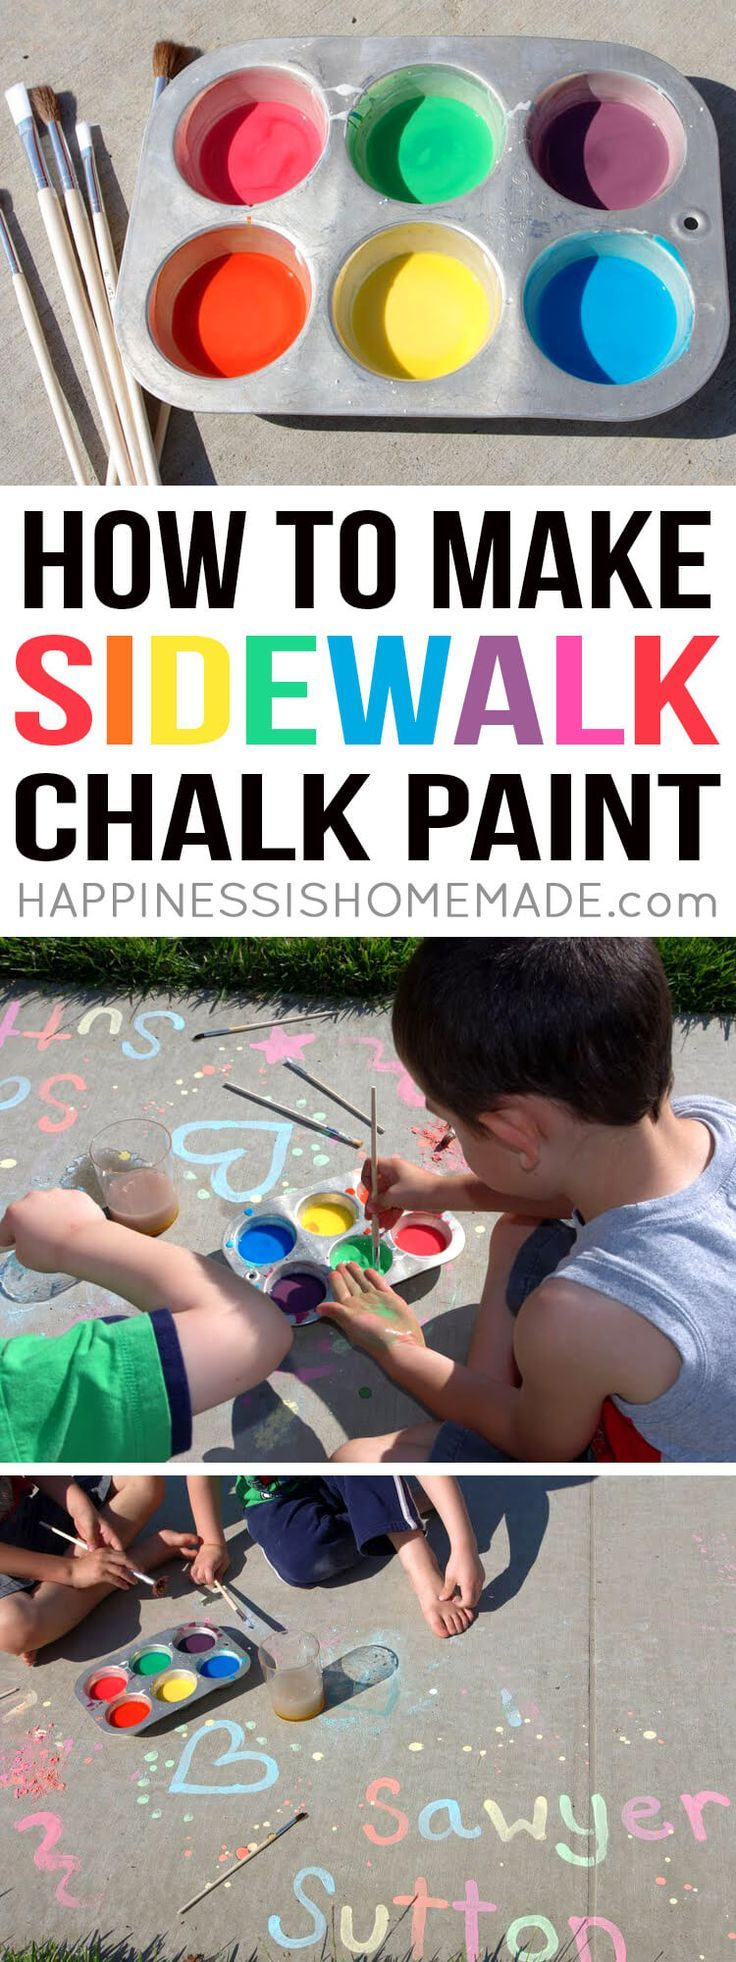 Learn How To Make Sidewalk Chalk Paint And Keep Your